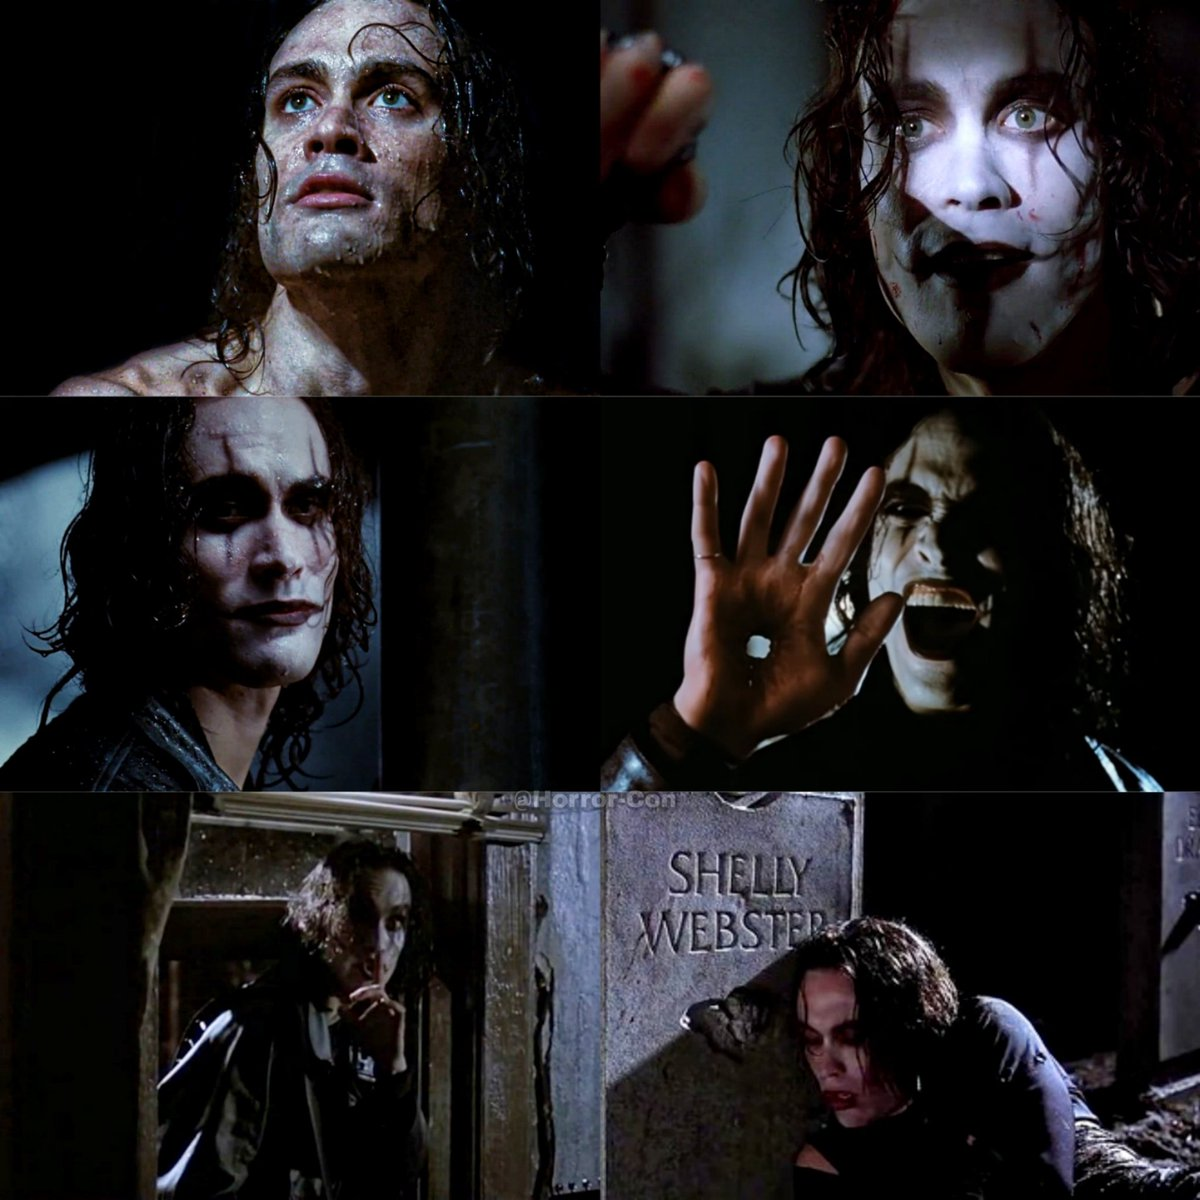 Brandon Lee would have celebrated his 55th birthday today (February 1, 1965 - March 31, 1993)